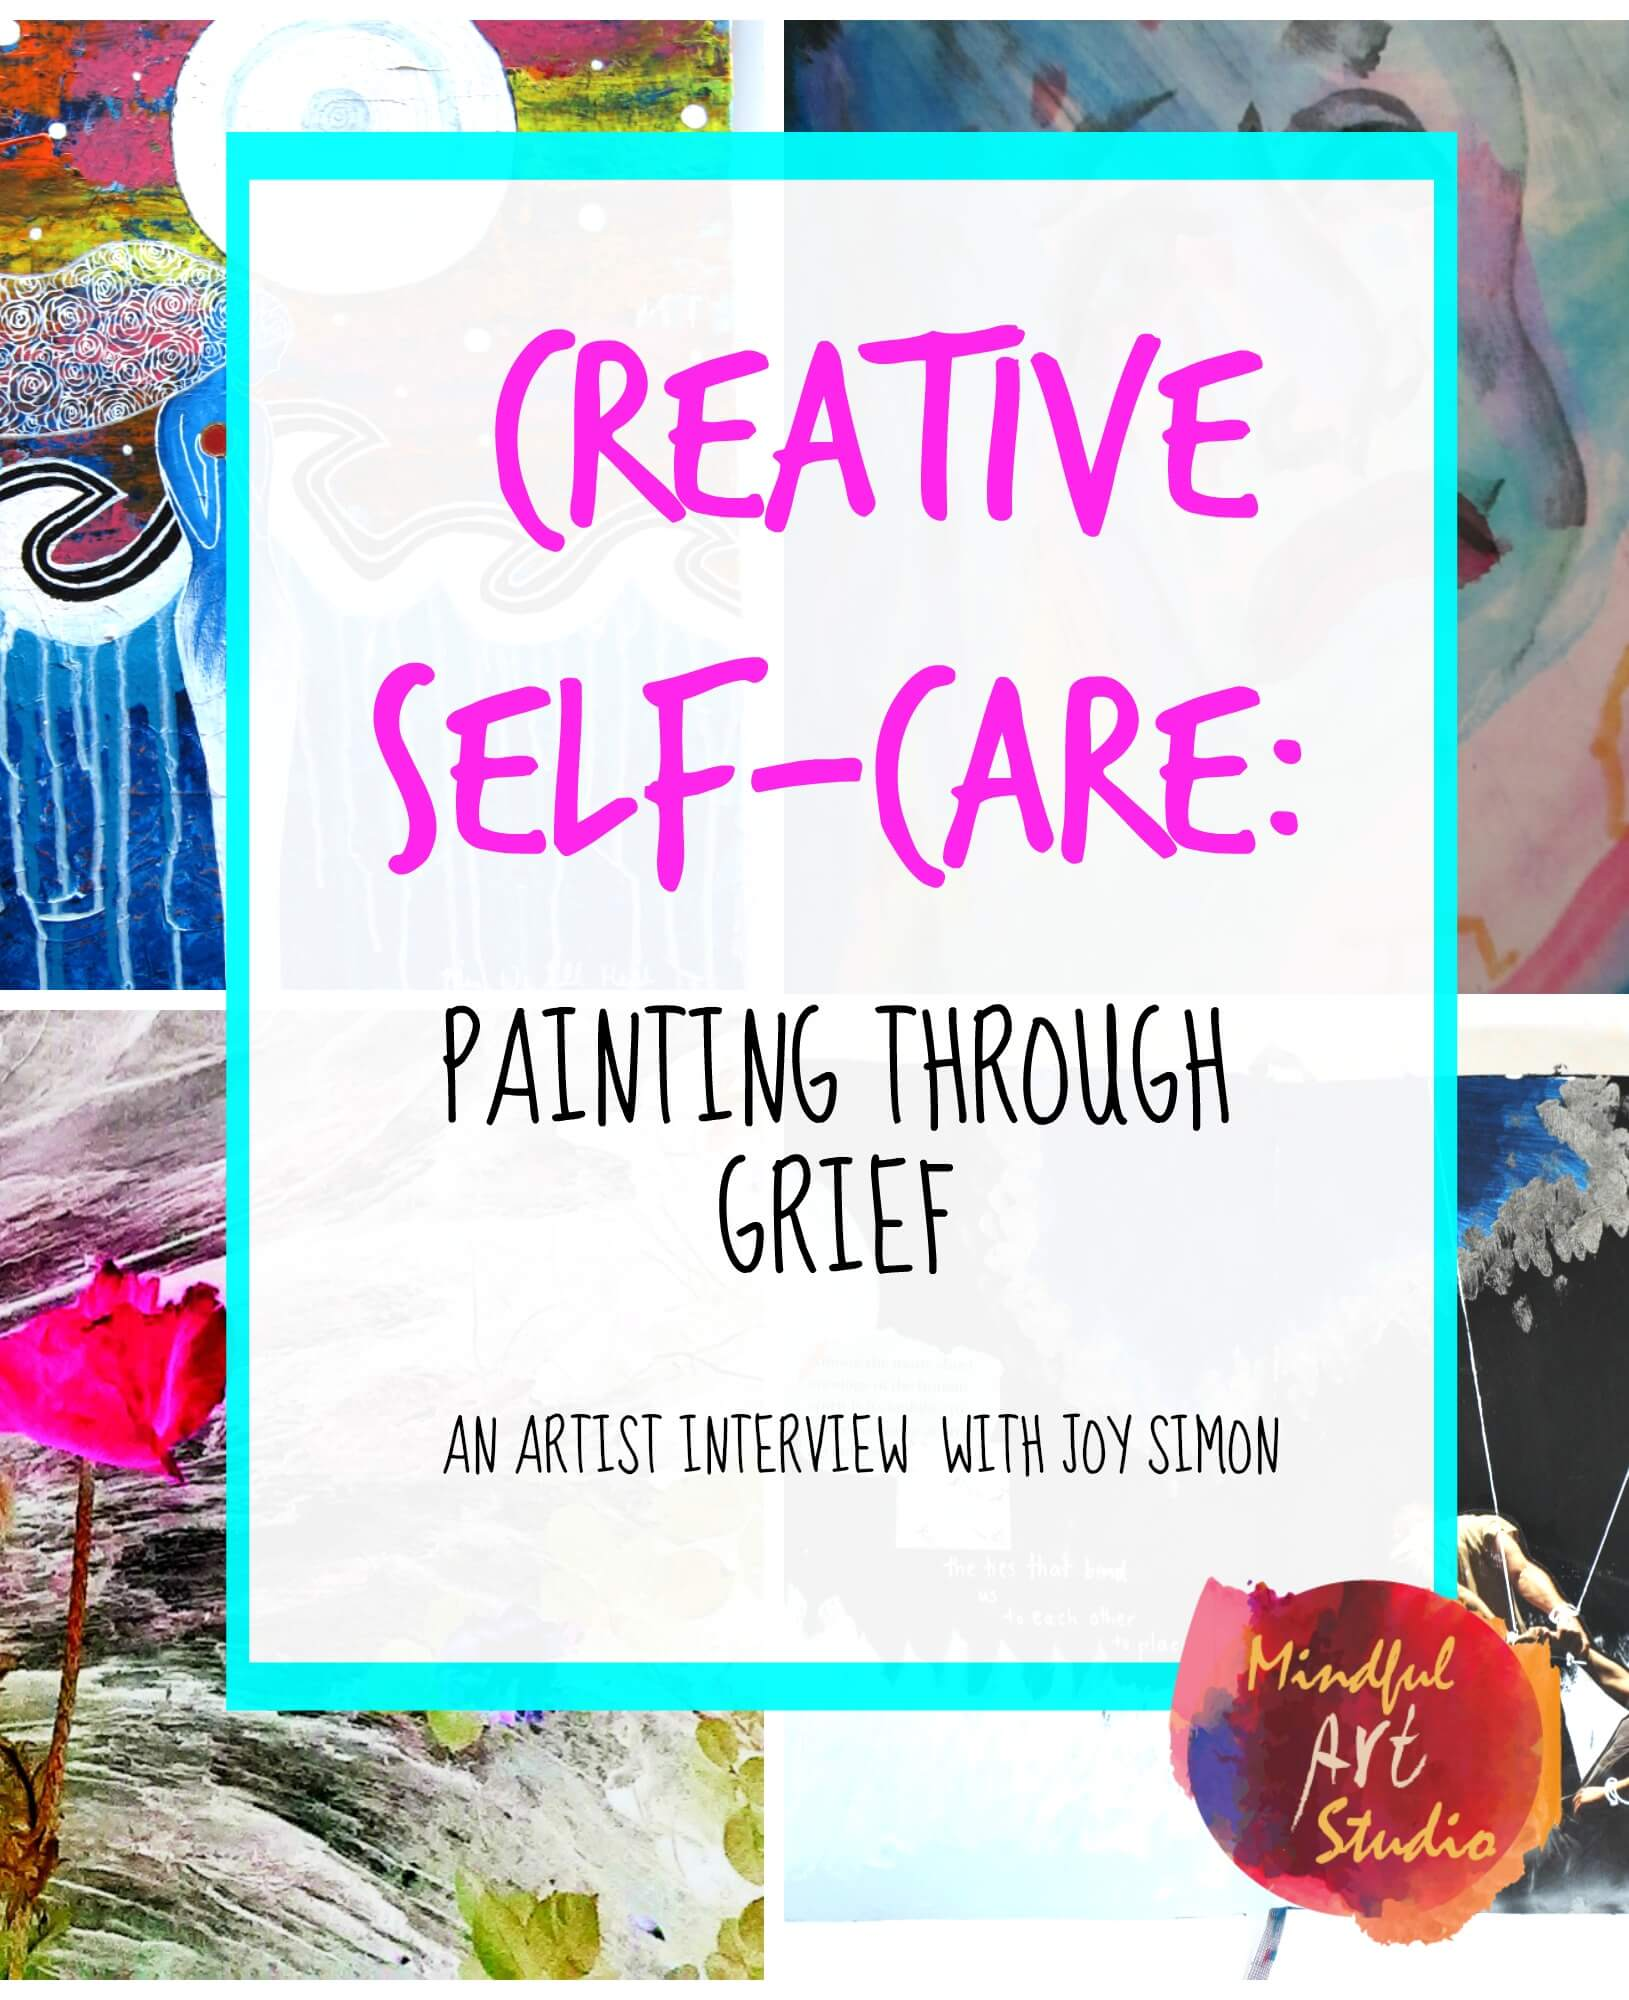 Painting Through Grief with Joy Simon